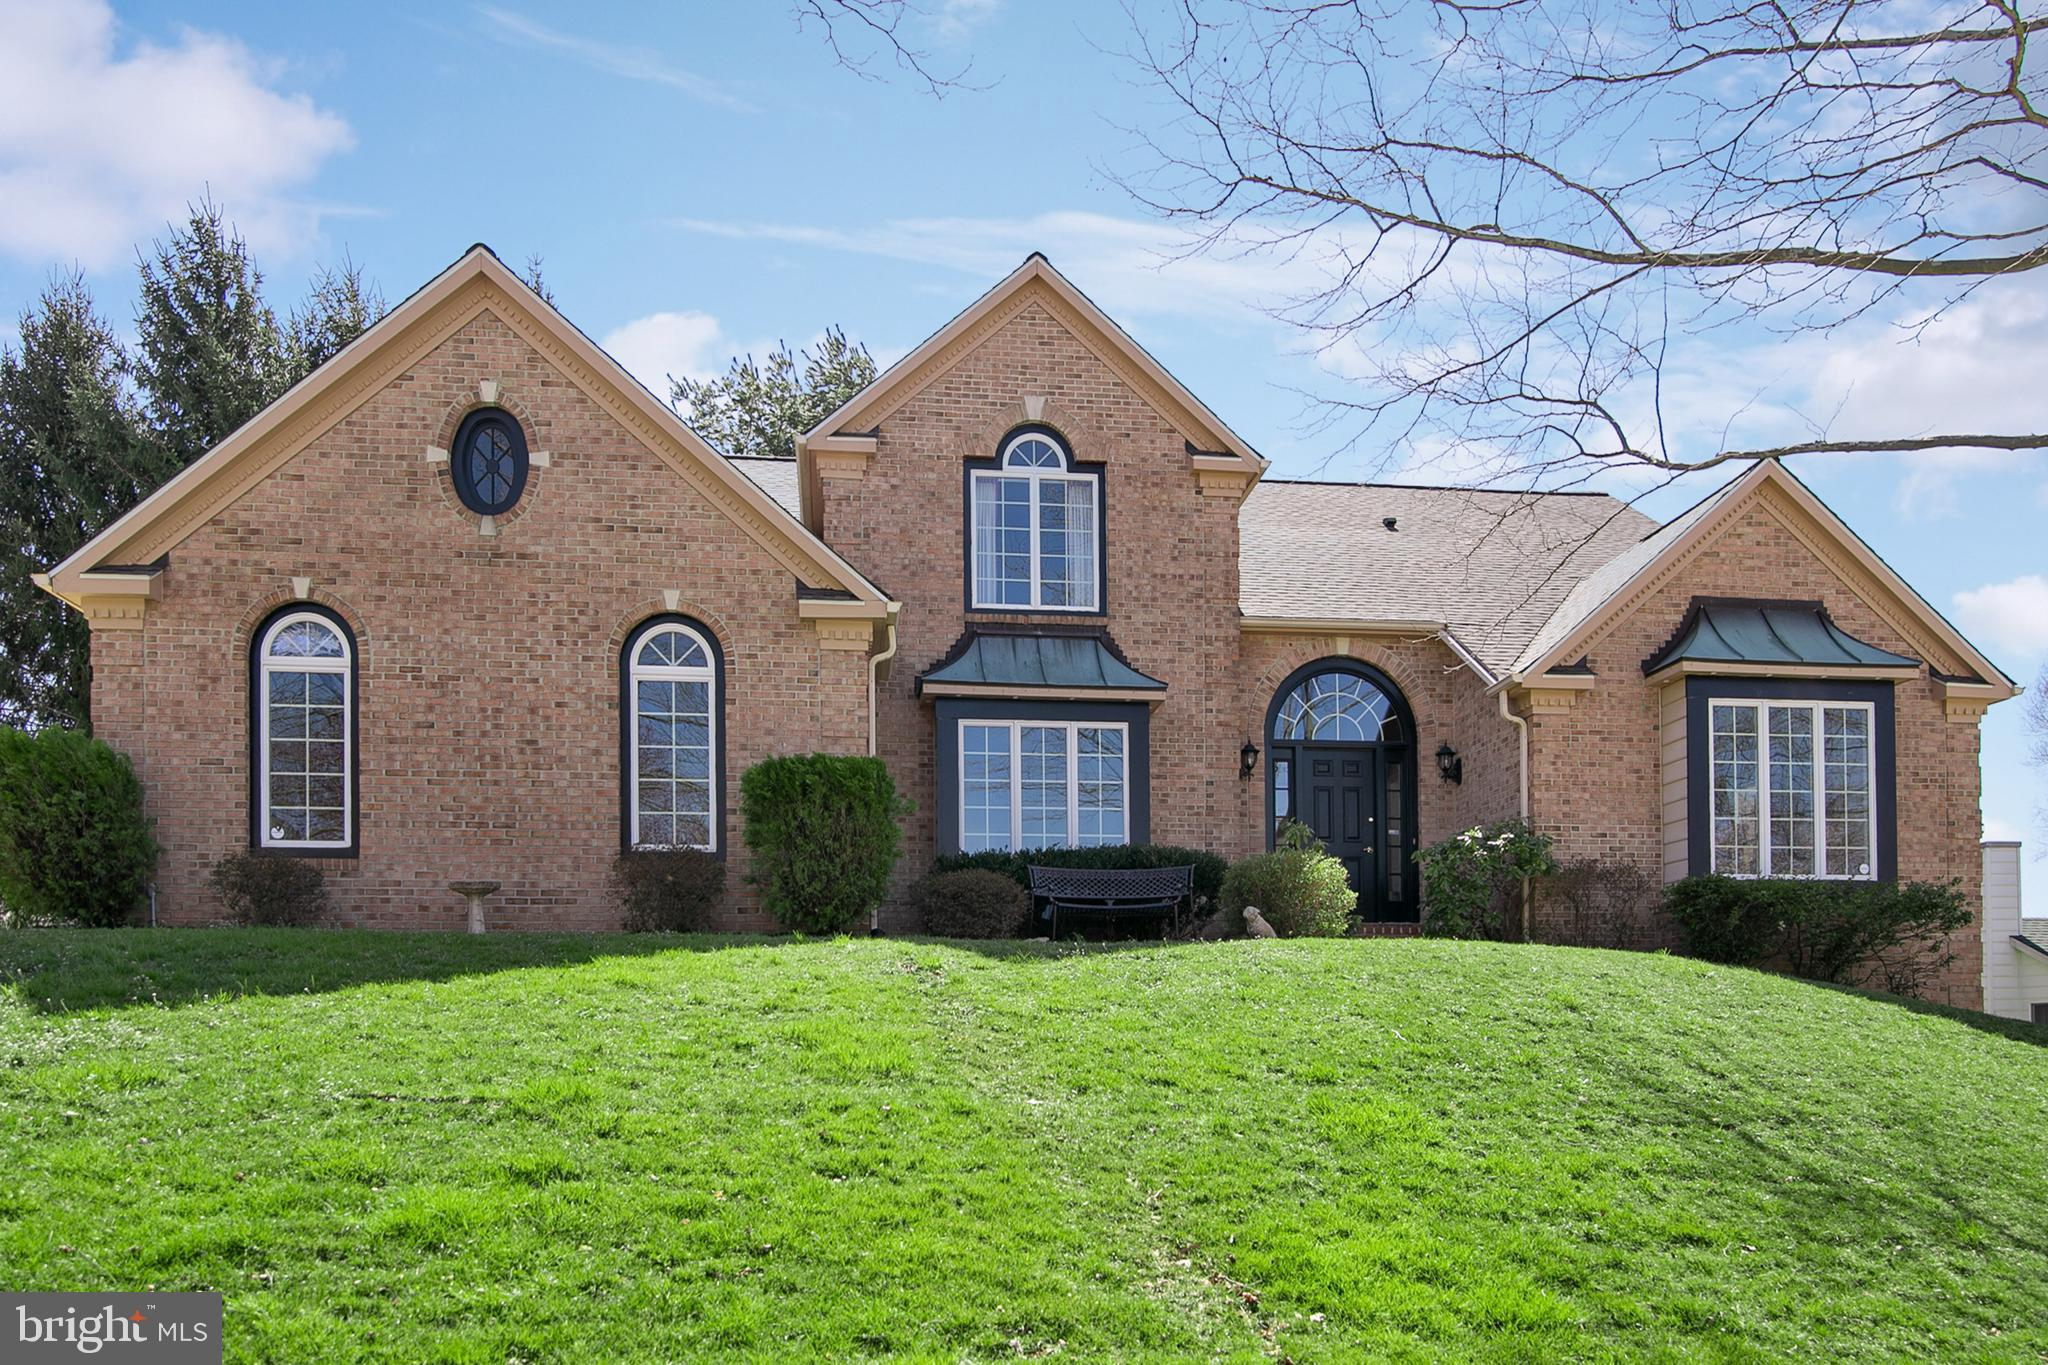 6400 EMPTY SONG ROAD, COLUMBIA, MD 21044